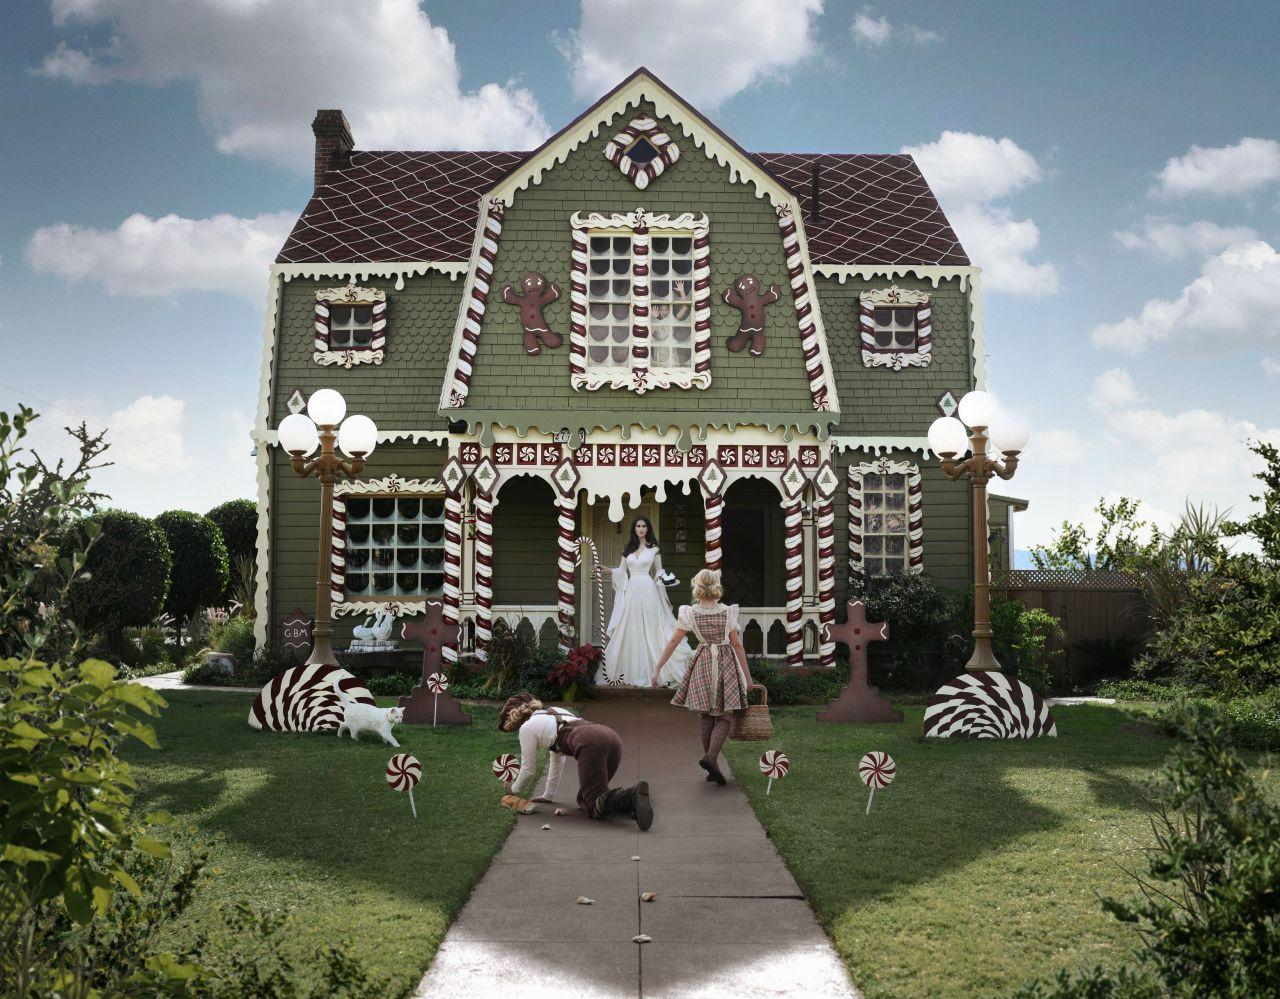 """<p>Known for her amazing themed home decorations, Christine McConnell showed her holiday spirit with this giant gingerbread house makeover. The incredible decor took a staggering effort of seven full 15-hour days of work to complete. (Photo:<a href=""""http://www.christinehmcconnell.com/"""" rel=""""nofollow noopener"""" target=""""_blank"""" data-ylk=""""slk:Christine McConnell"""" class=""""link rapid-noclick-resp""""> Christine McConnell</a>) </p>"""